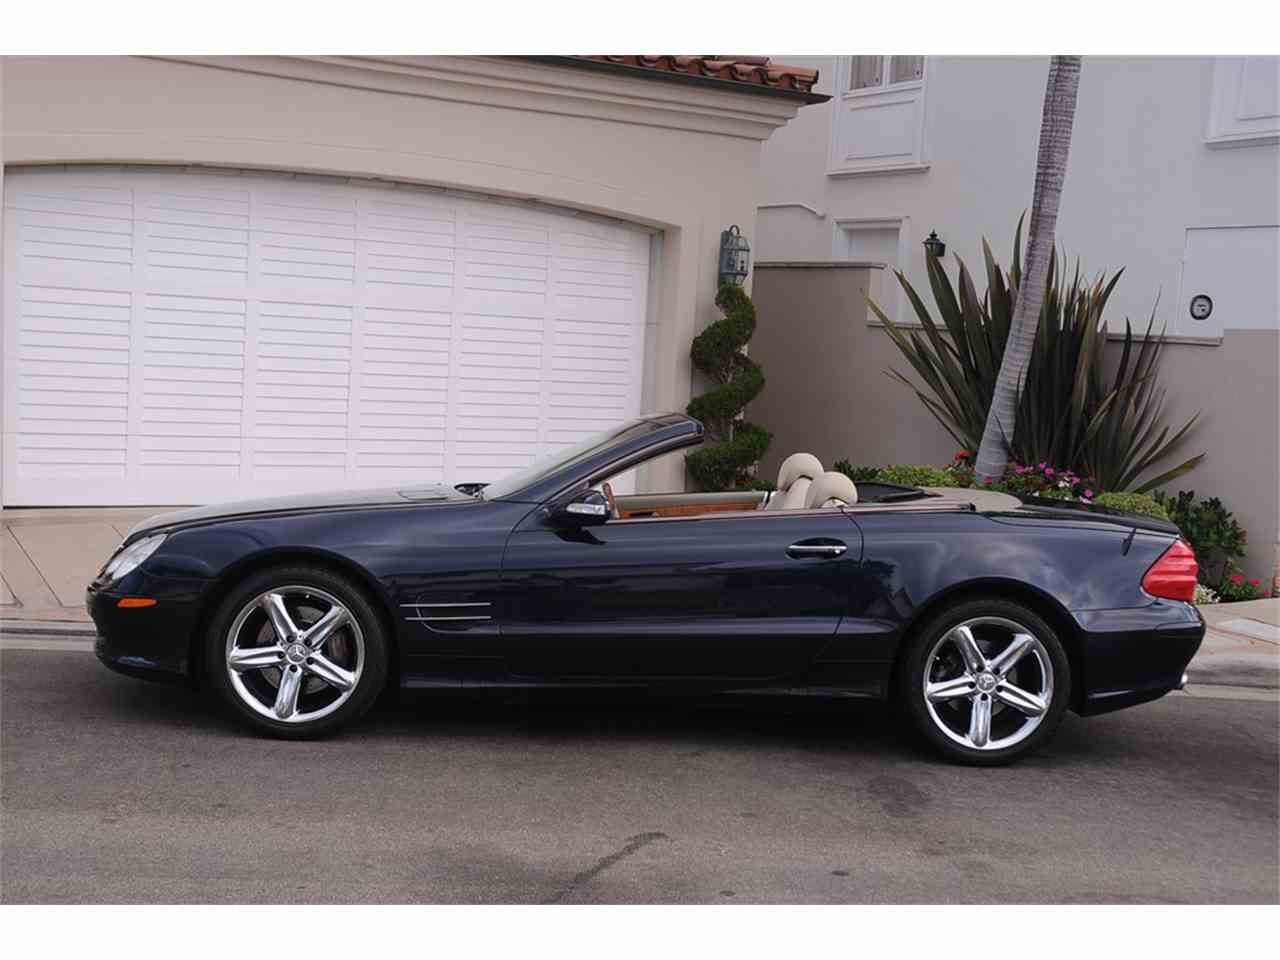 Large Picture of 2003 SL500 located in Costa Mesa California - $13,990.00 - M694